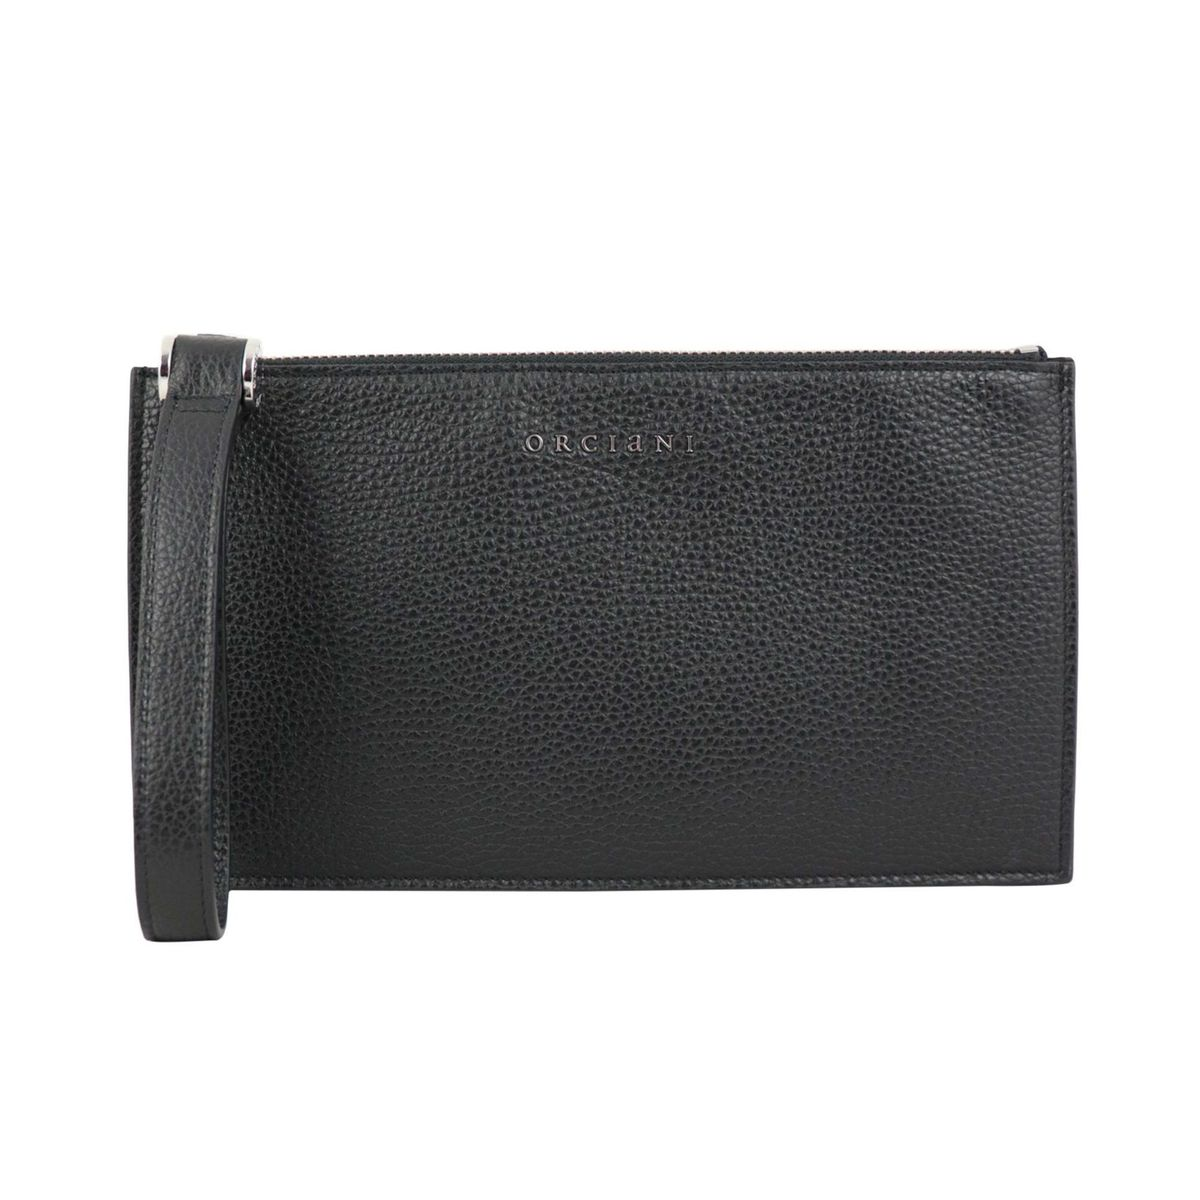 Micron leather clutch bag Black Orciani